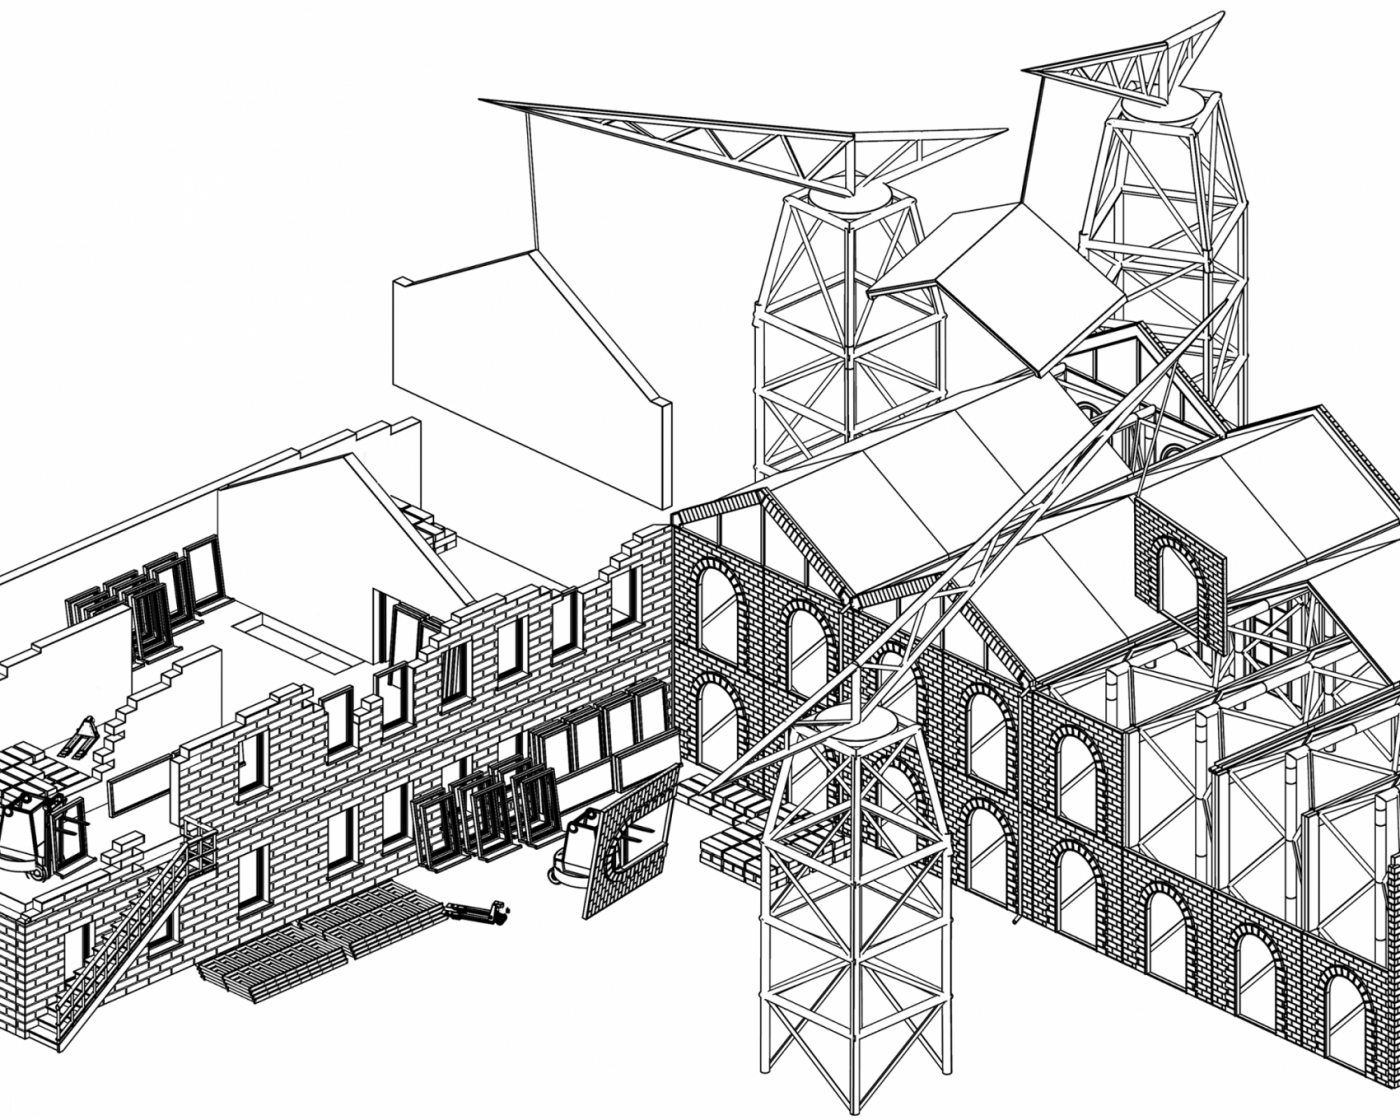 An axonometric drawing of the Archiving Architecture proposal showing architectural elements coming together on site.